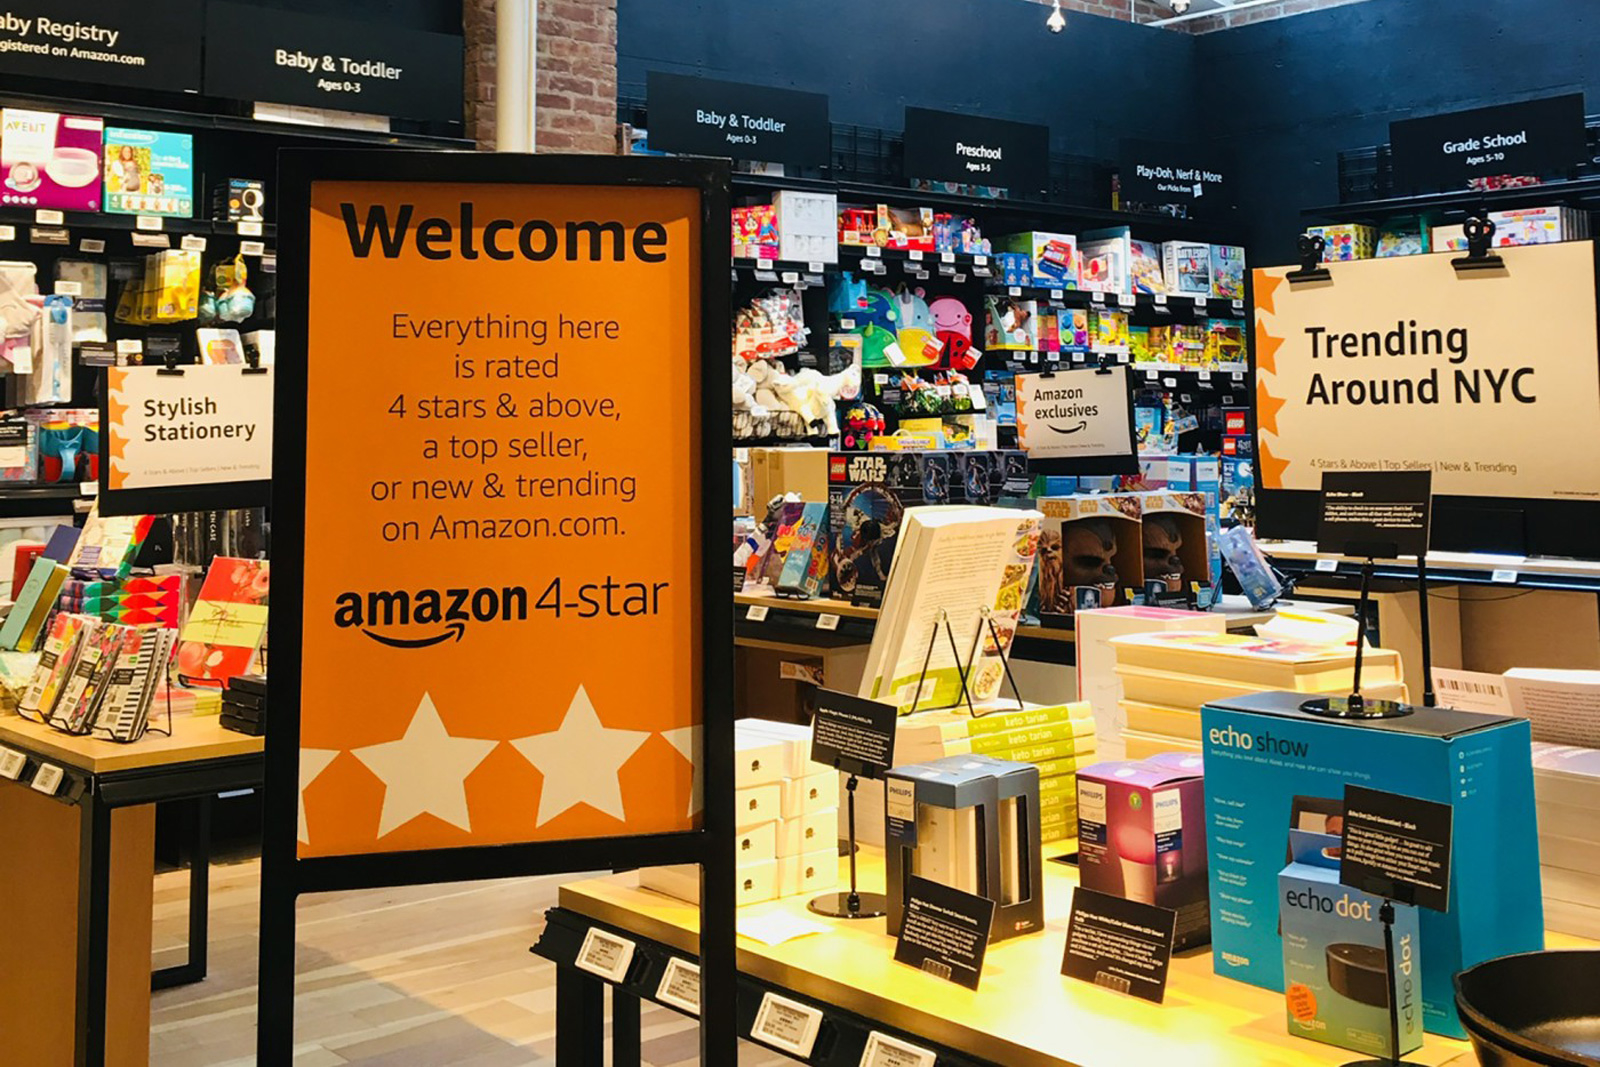 viventium-design-zac-kraemer-amazon-four-star-retail-design-1.jpeg